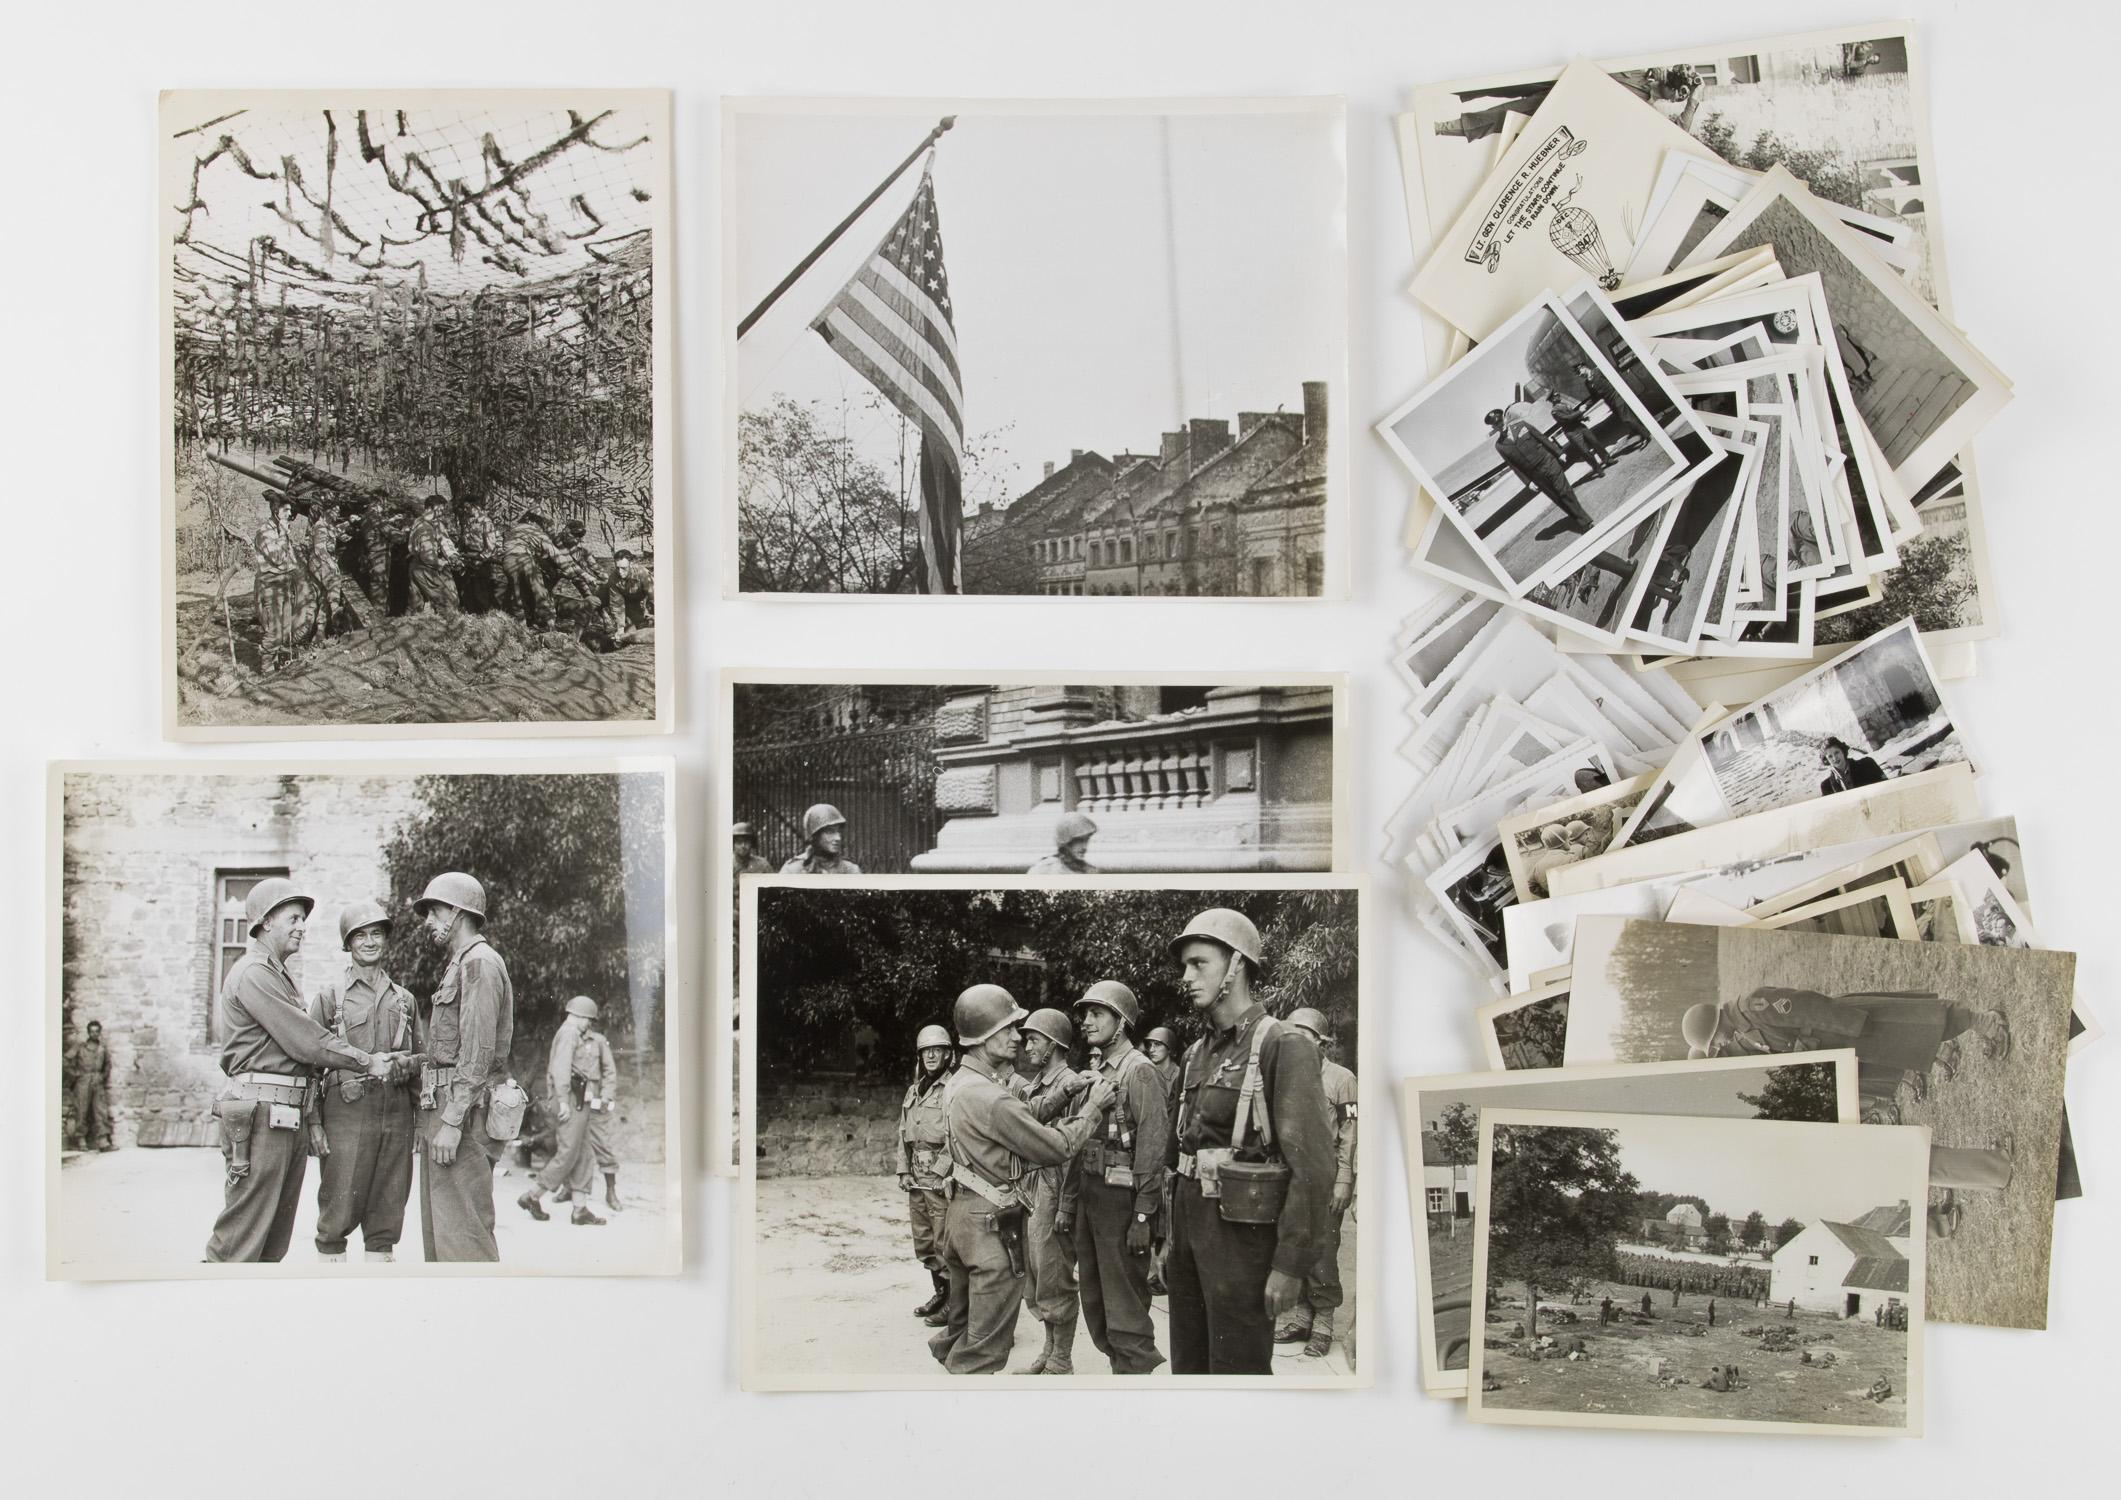 GEN. CLARENCE R. HUEBNER'S PHOTOGRAPH GROUPING (85+)